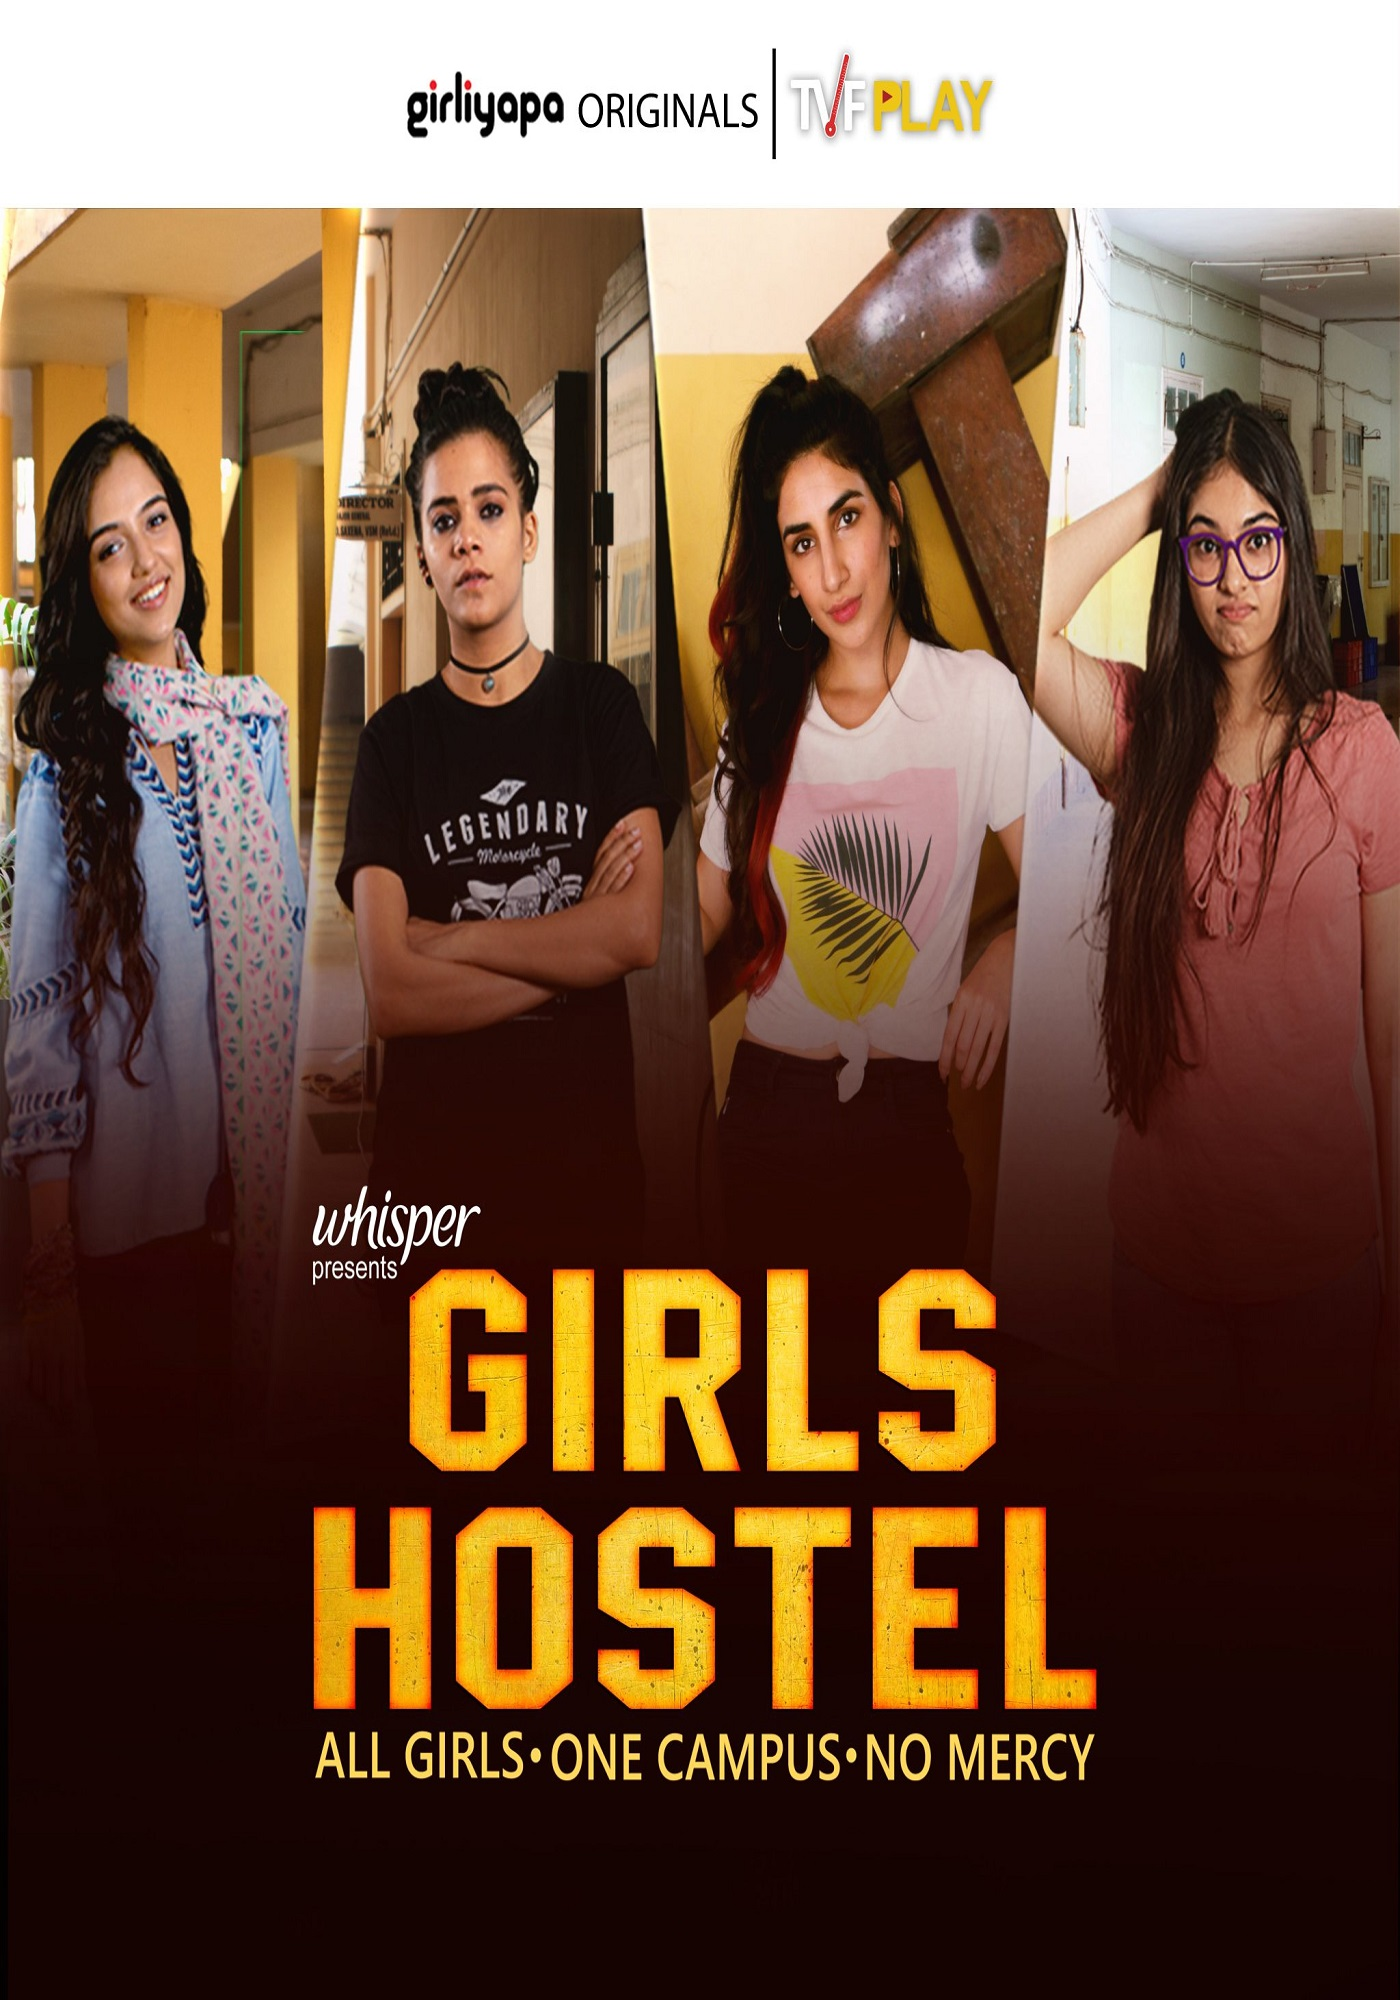 Girls Hostel (TV Series 2018– ) - IMDb